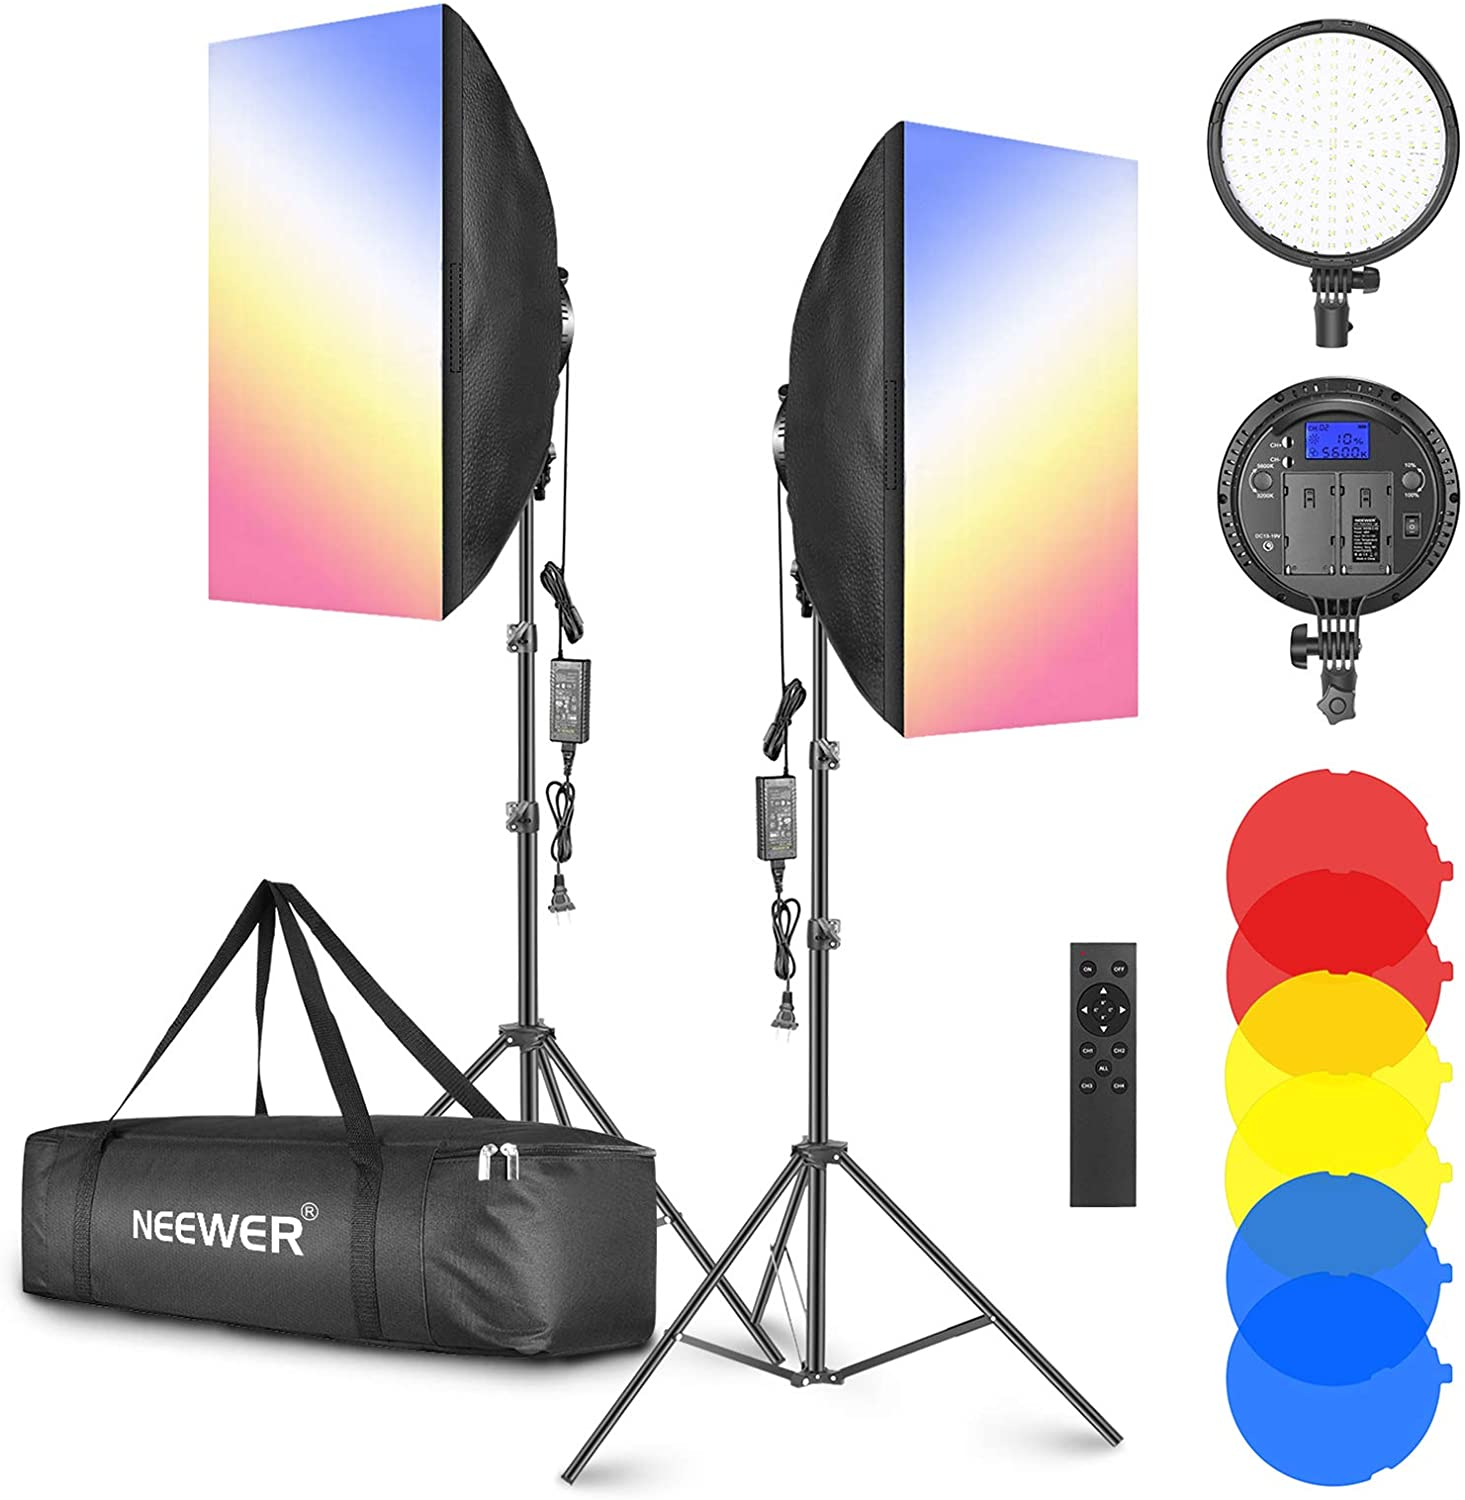 """Neewer 2-Pack 2.4GHz LED Softbox Lighting Kit with Color Filter — 20"""" × 28"""" Softbox, 3200–5600K 48W Dimmable LED Light Head, 2.4GHz Remote, Light Stand & Red/Yellow/Blue Filter for Photo Studio Video"""